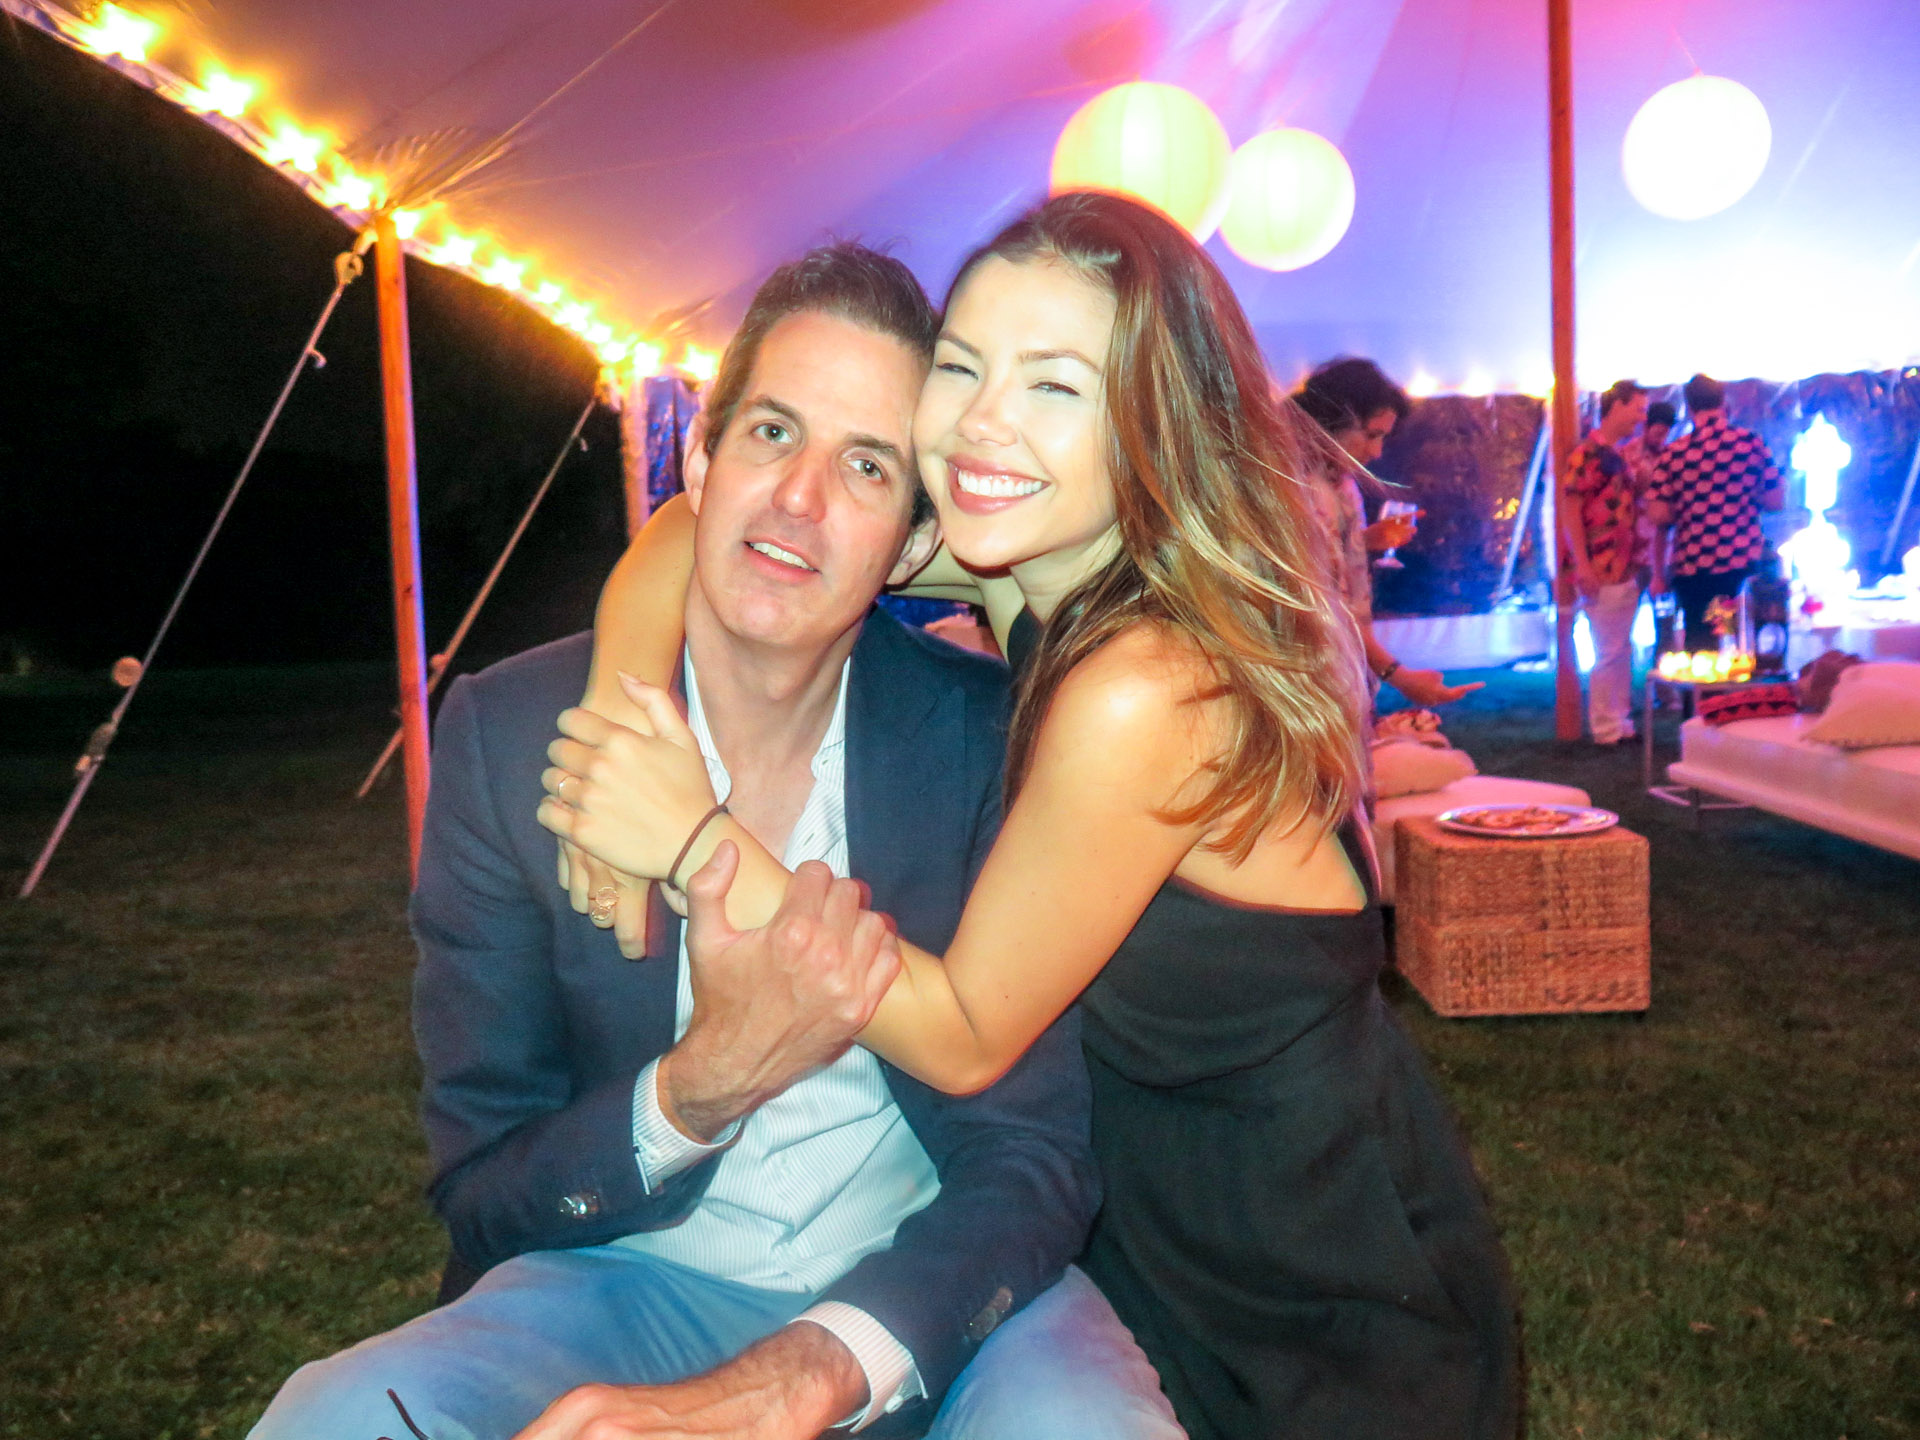 2eric_striffler_photography_event_party-3.jpg